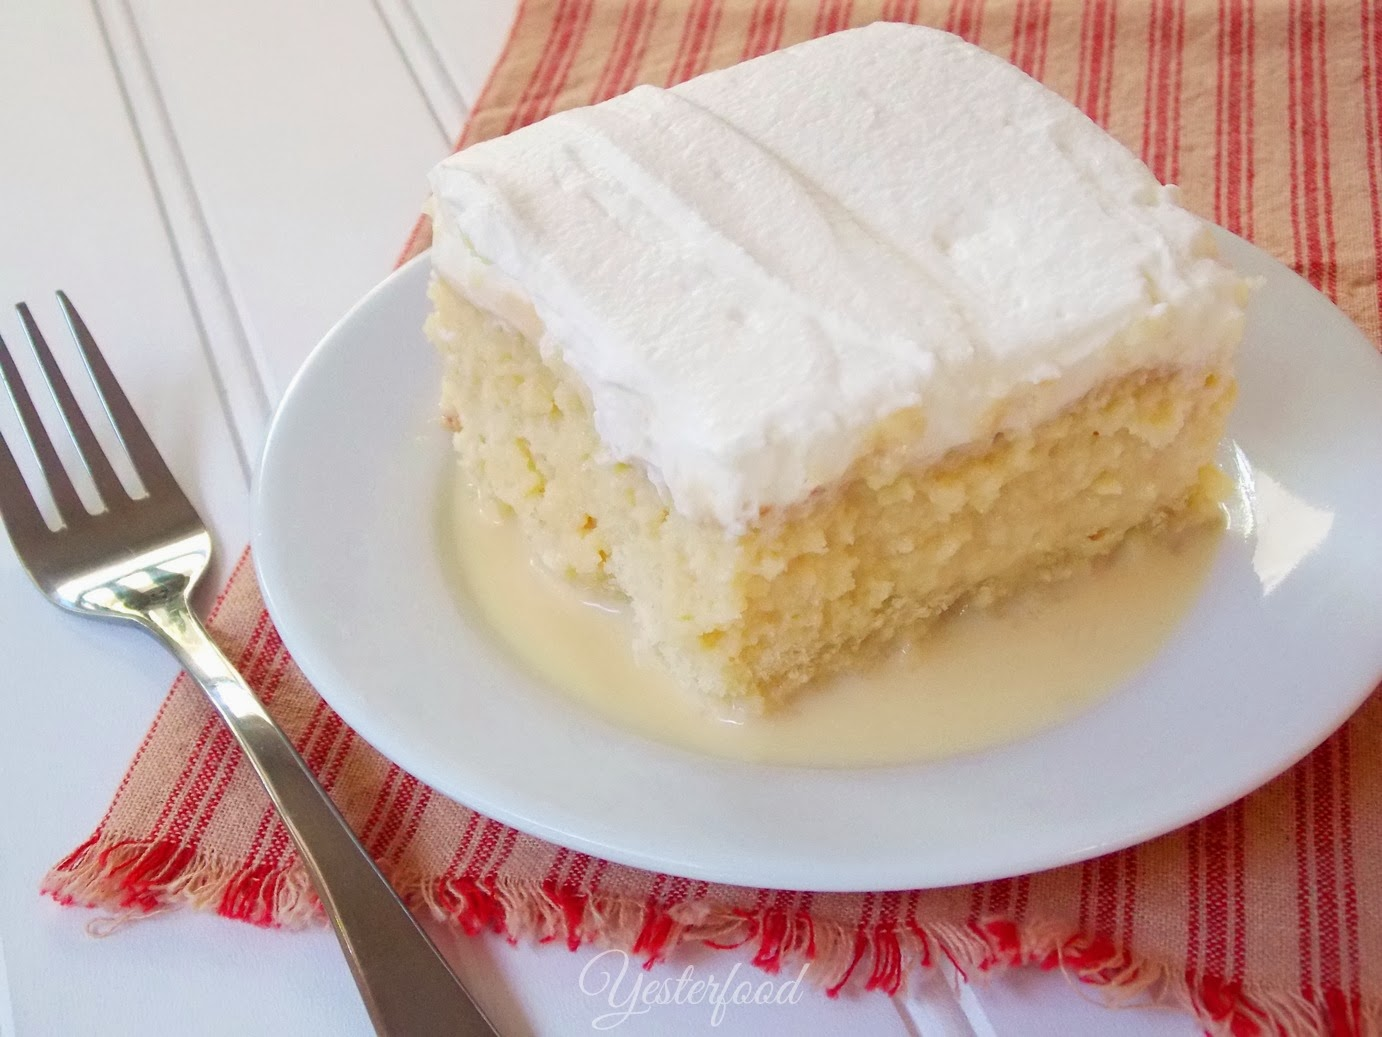 Yesterfood : Tres Leches Cake